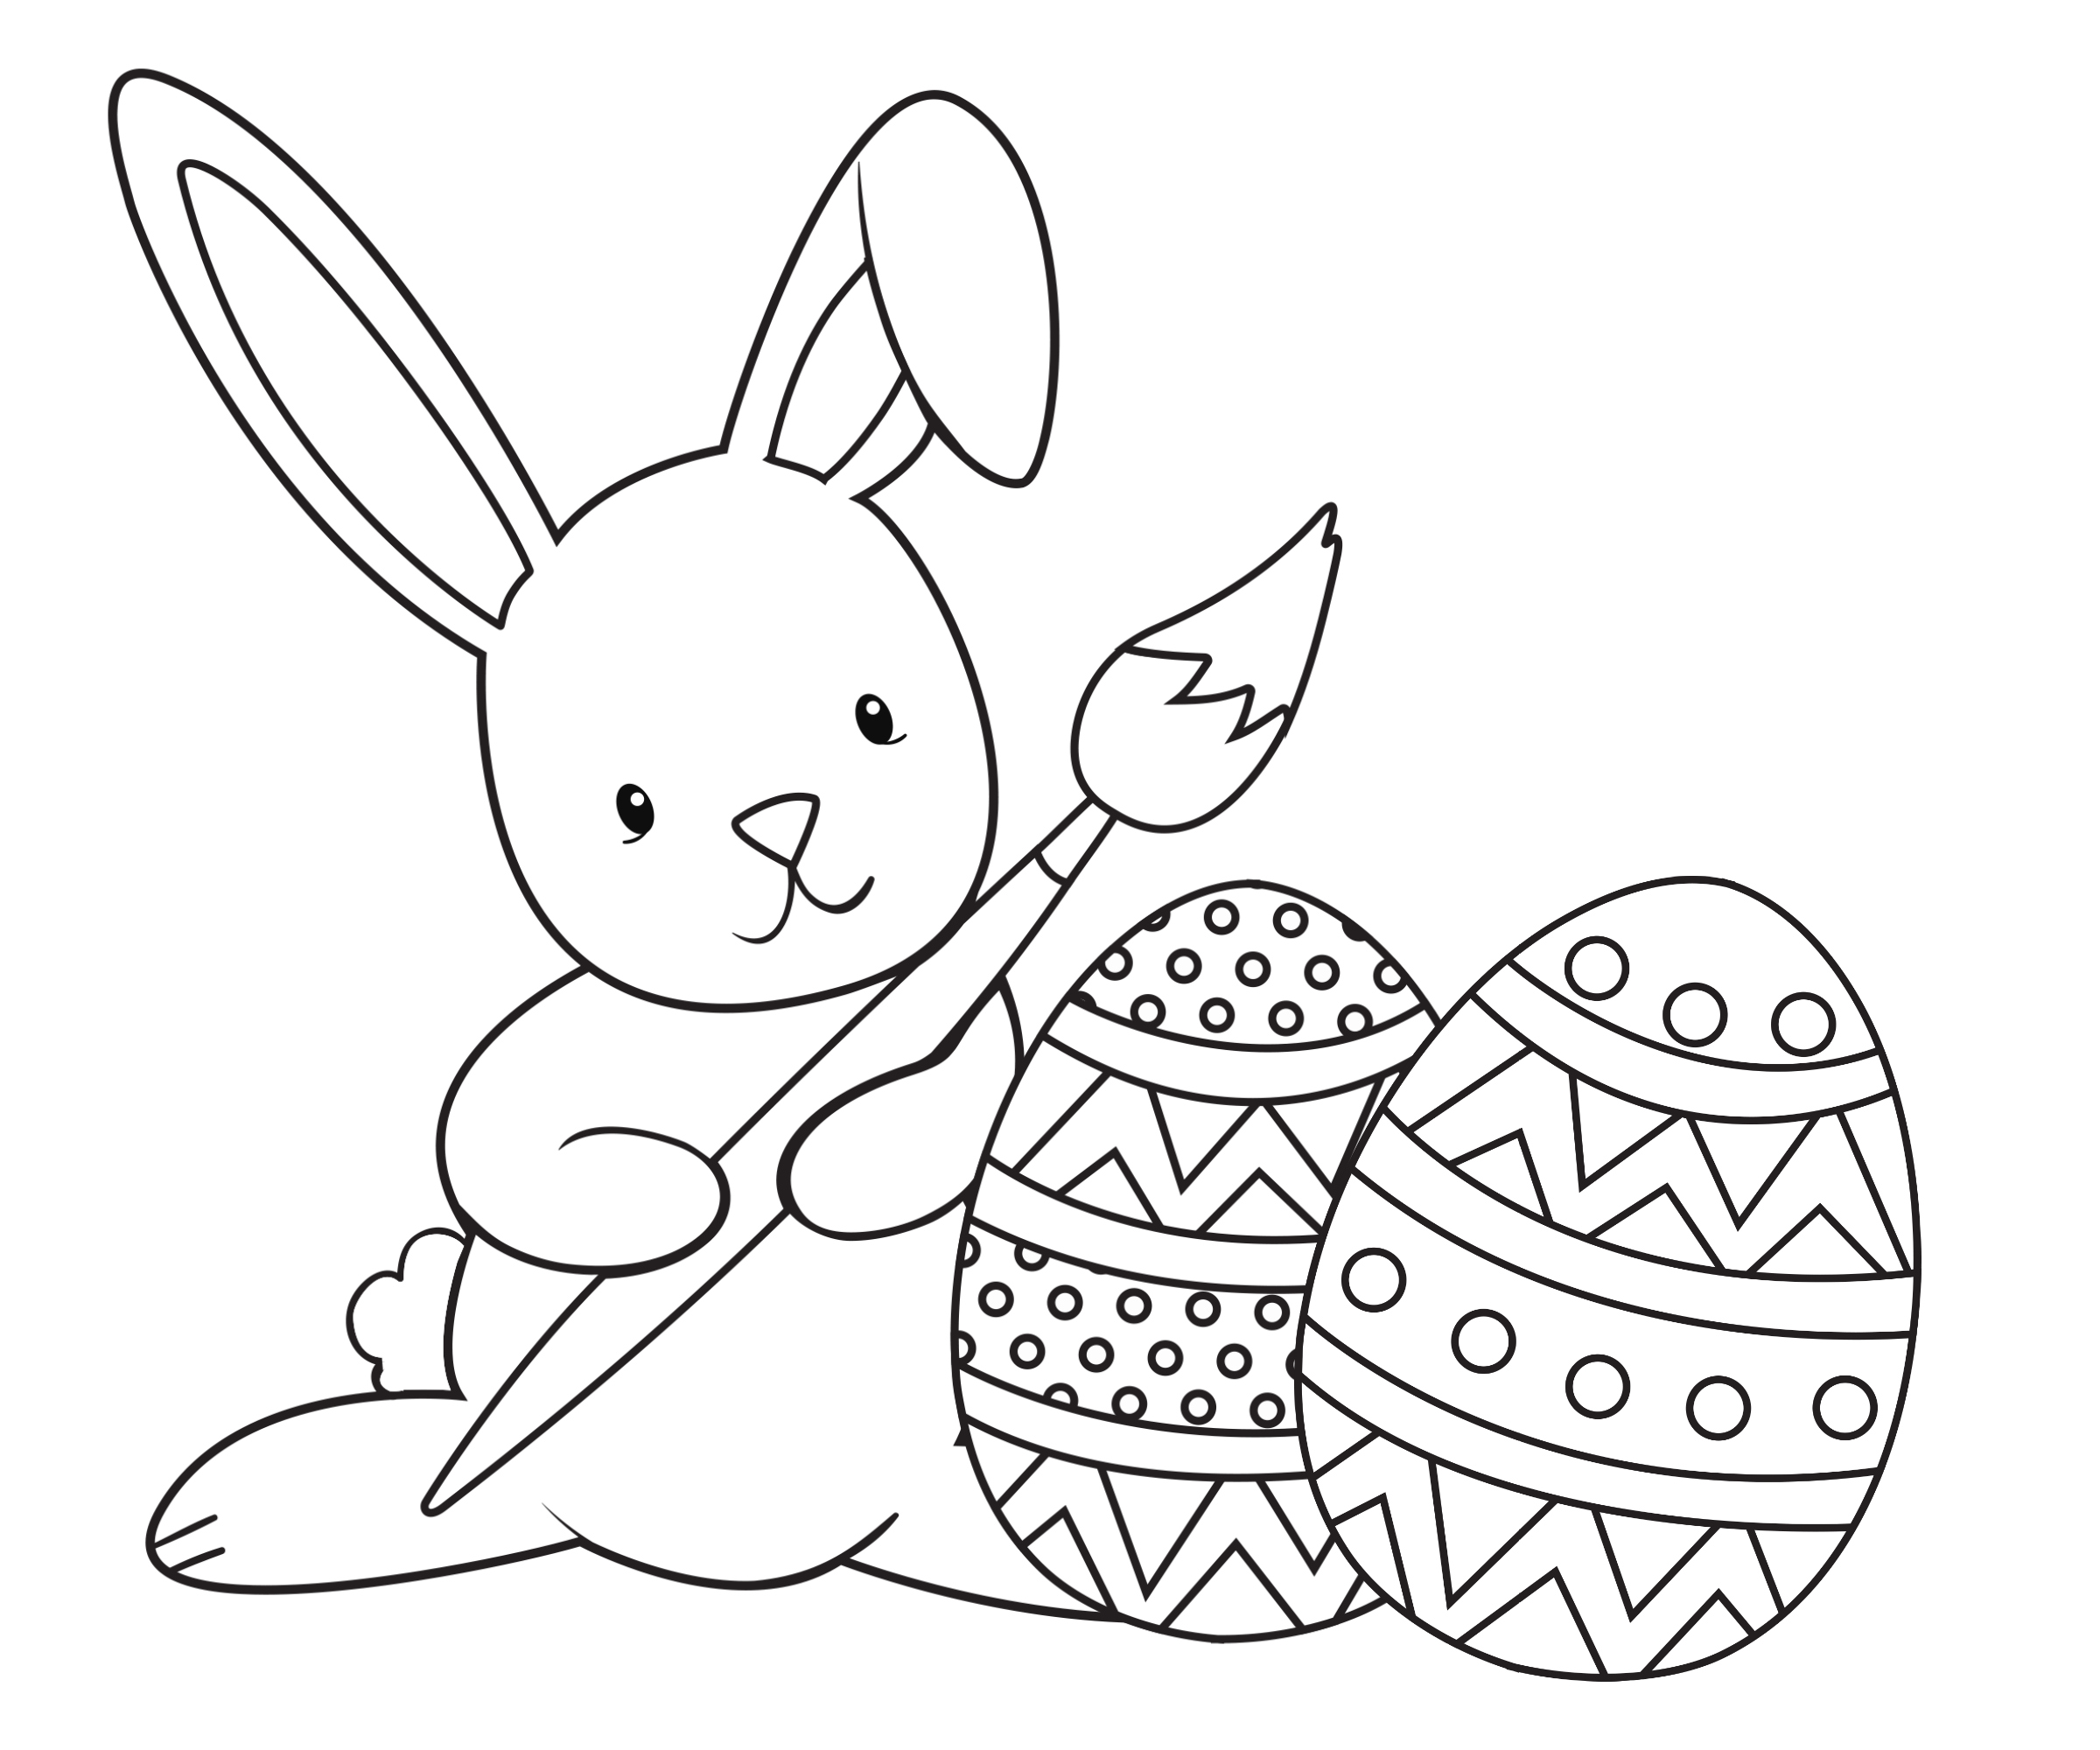 Coloring pages bunny - Hoppyeastercoloringpage Bunny Painting Eggs Coloring Page Paintingbunny